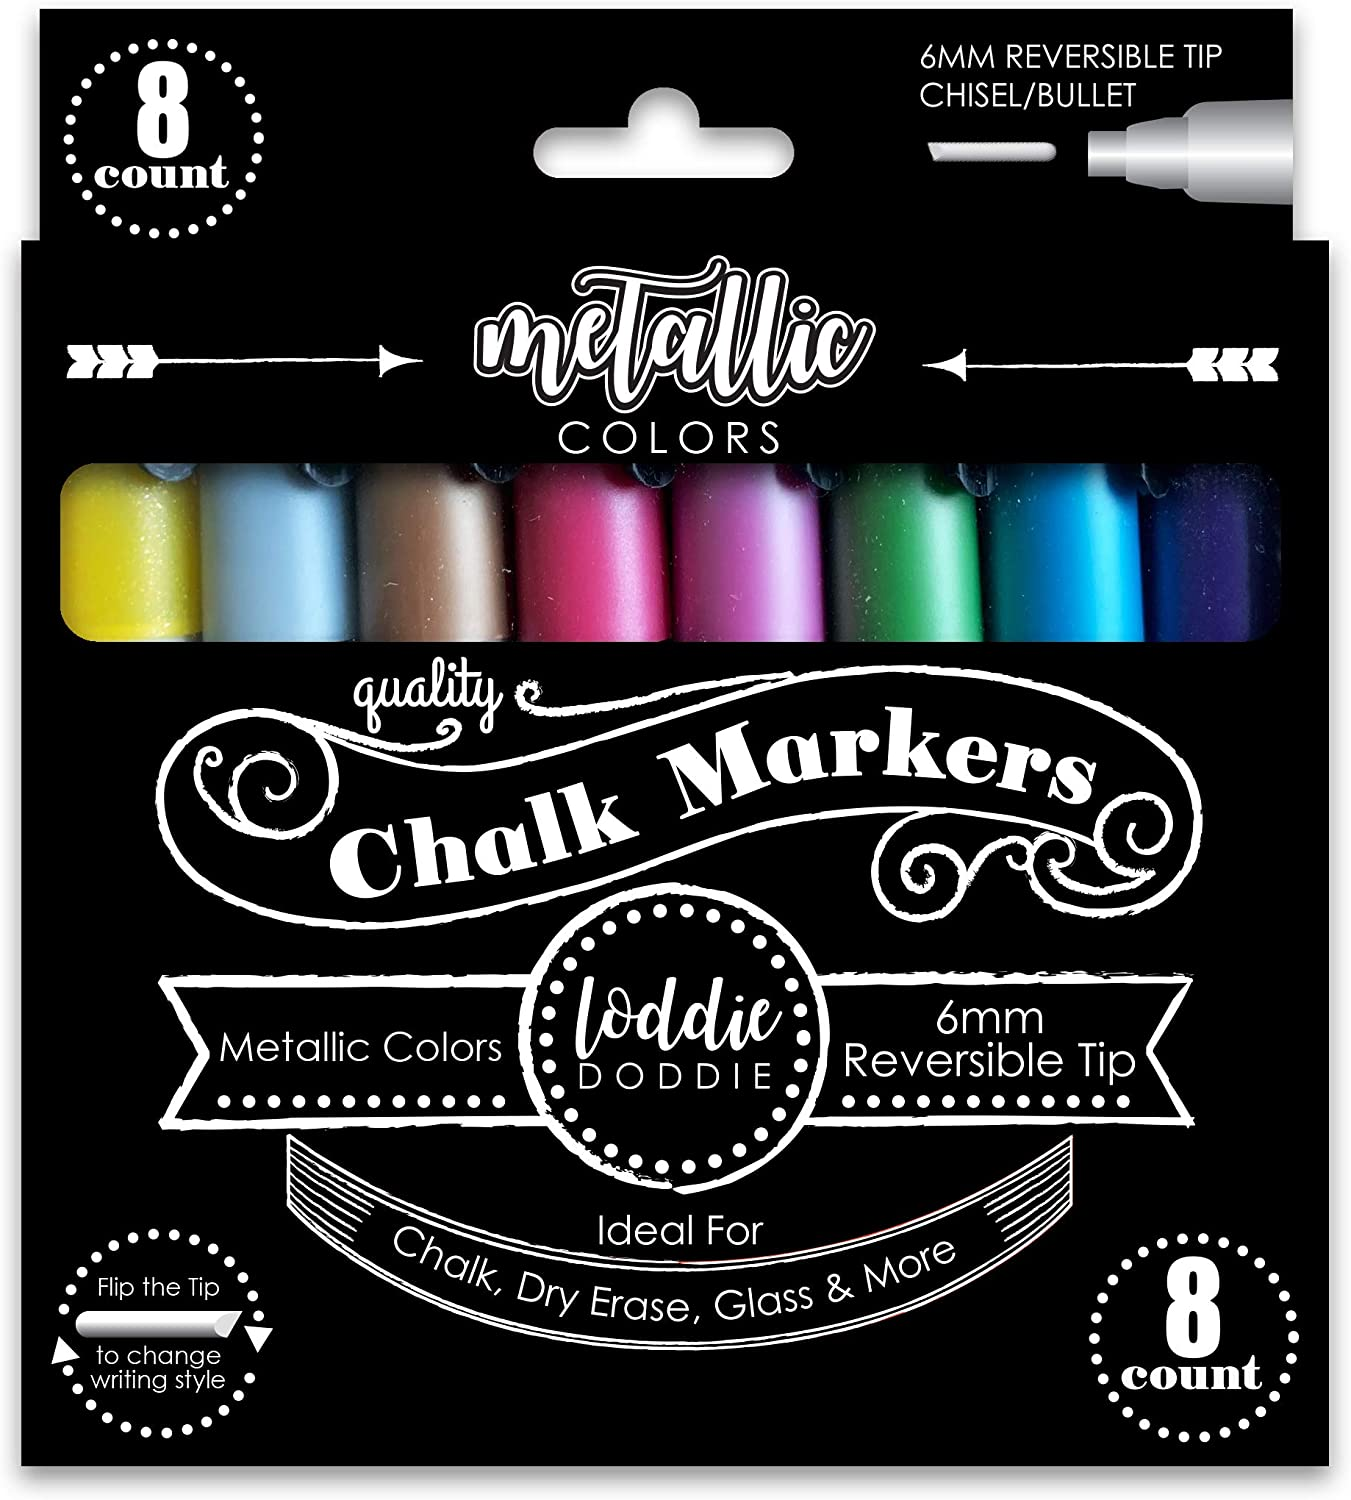 Loddie Doddie 8ct Chalk Markers- Metallic Colors for use on Chalk, Dry Erase and Glass surfaces